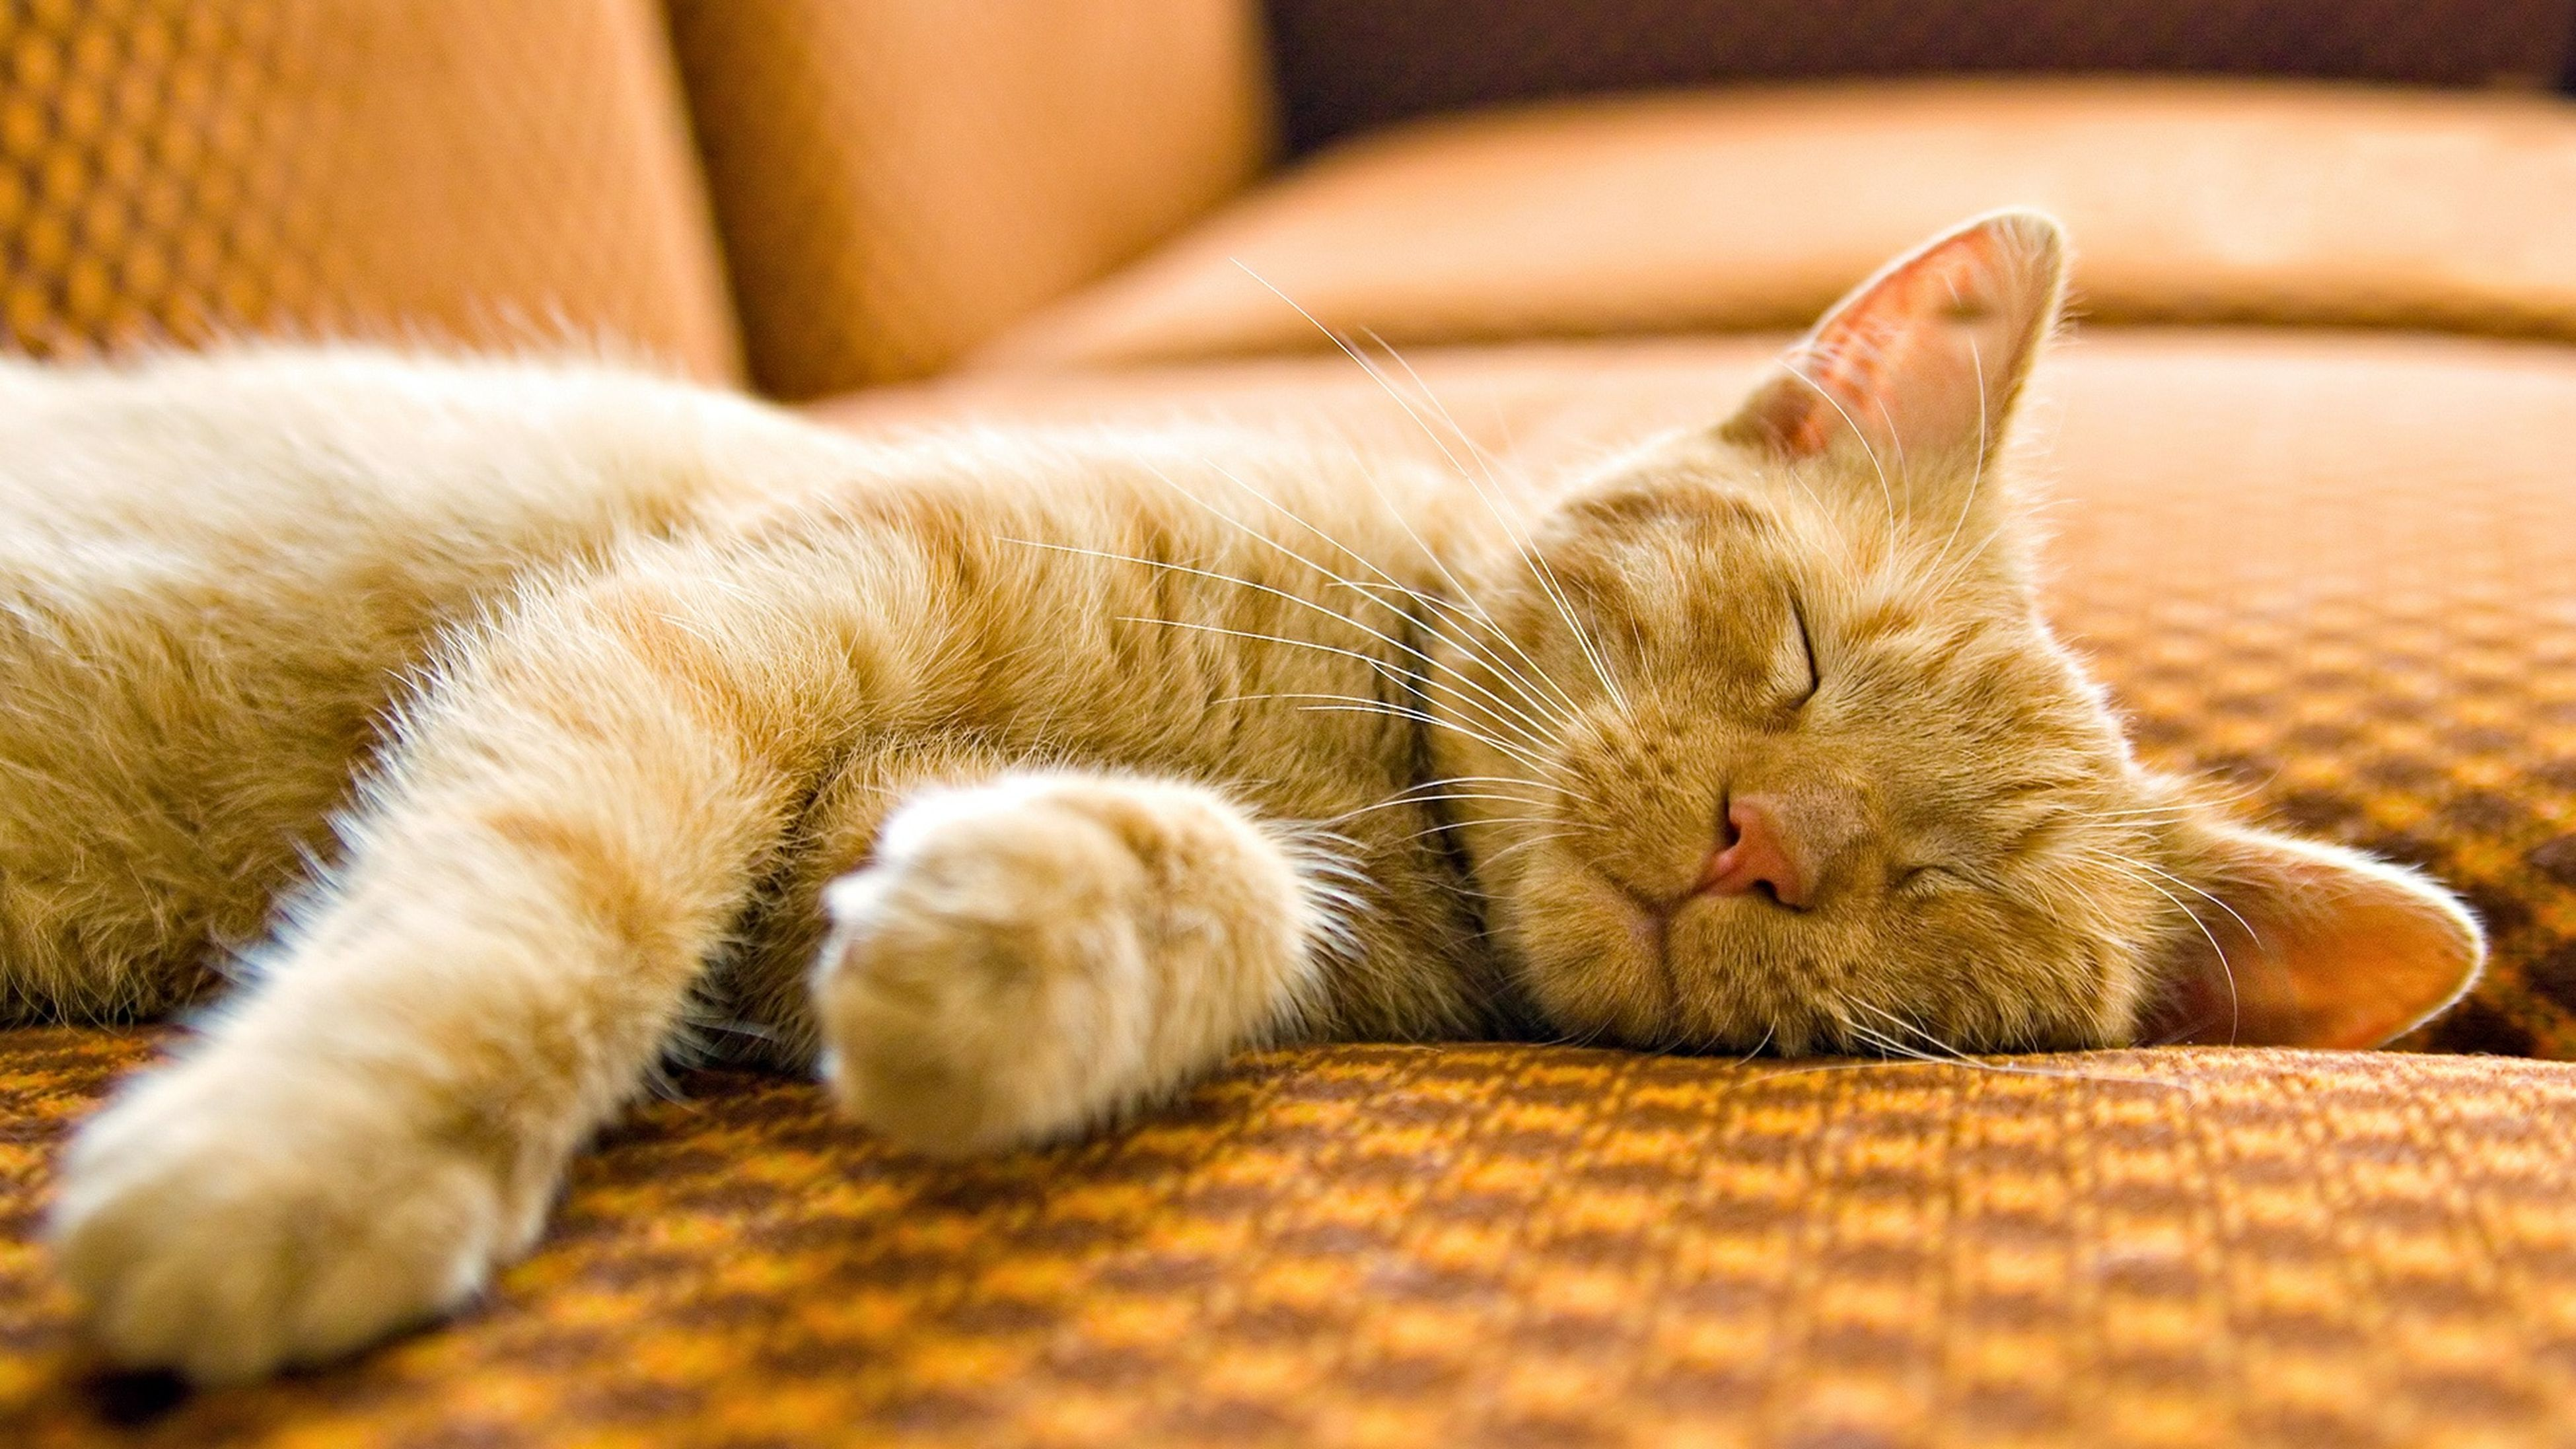 indoors, domestic cat, pets, domestic animals, relaxation, cat, animal themes, mammal, sleeping, resting, feline, one animal, lying down, whisker, close-up, bed, home interior, eyes closed, comfortable, sofa